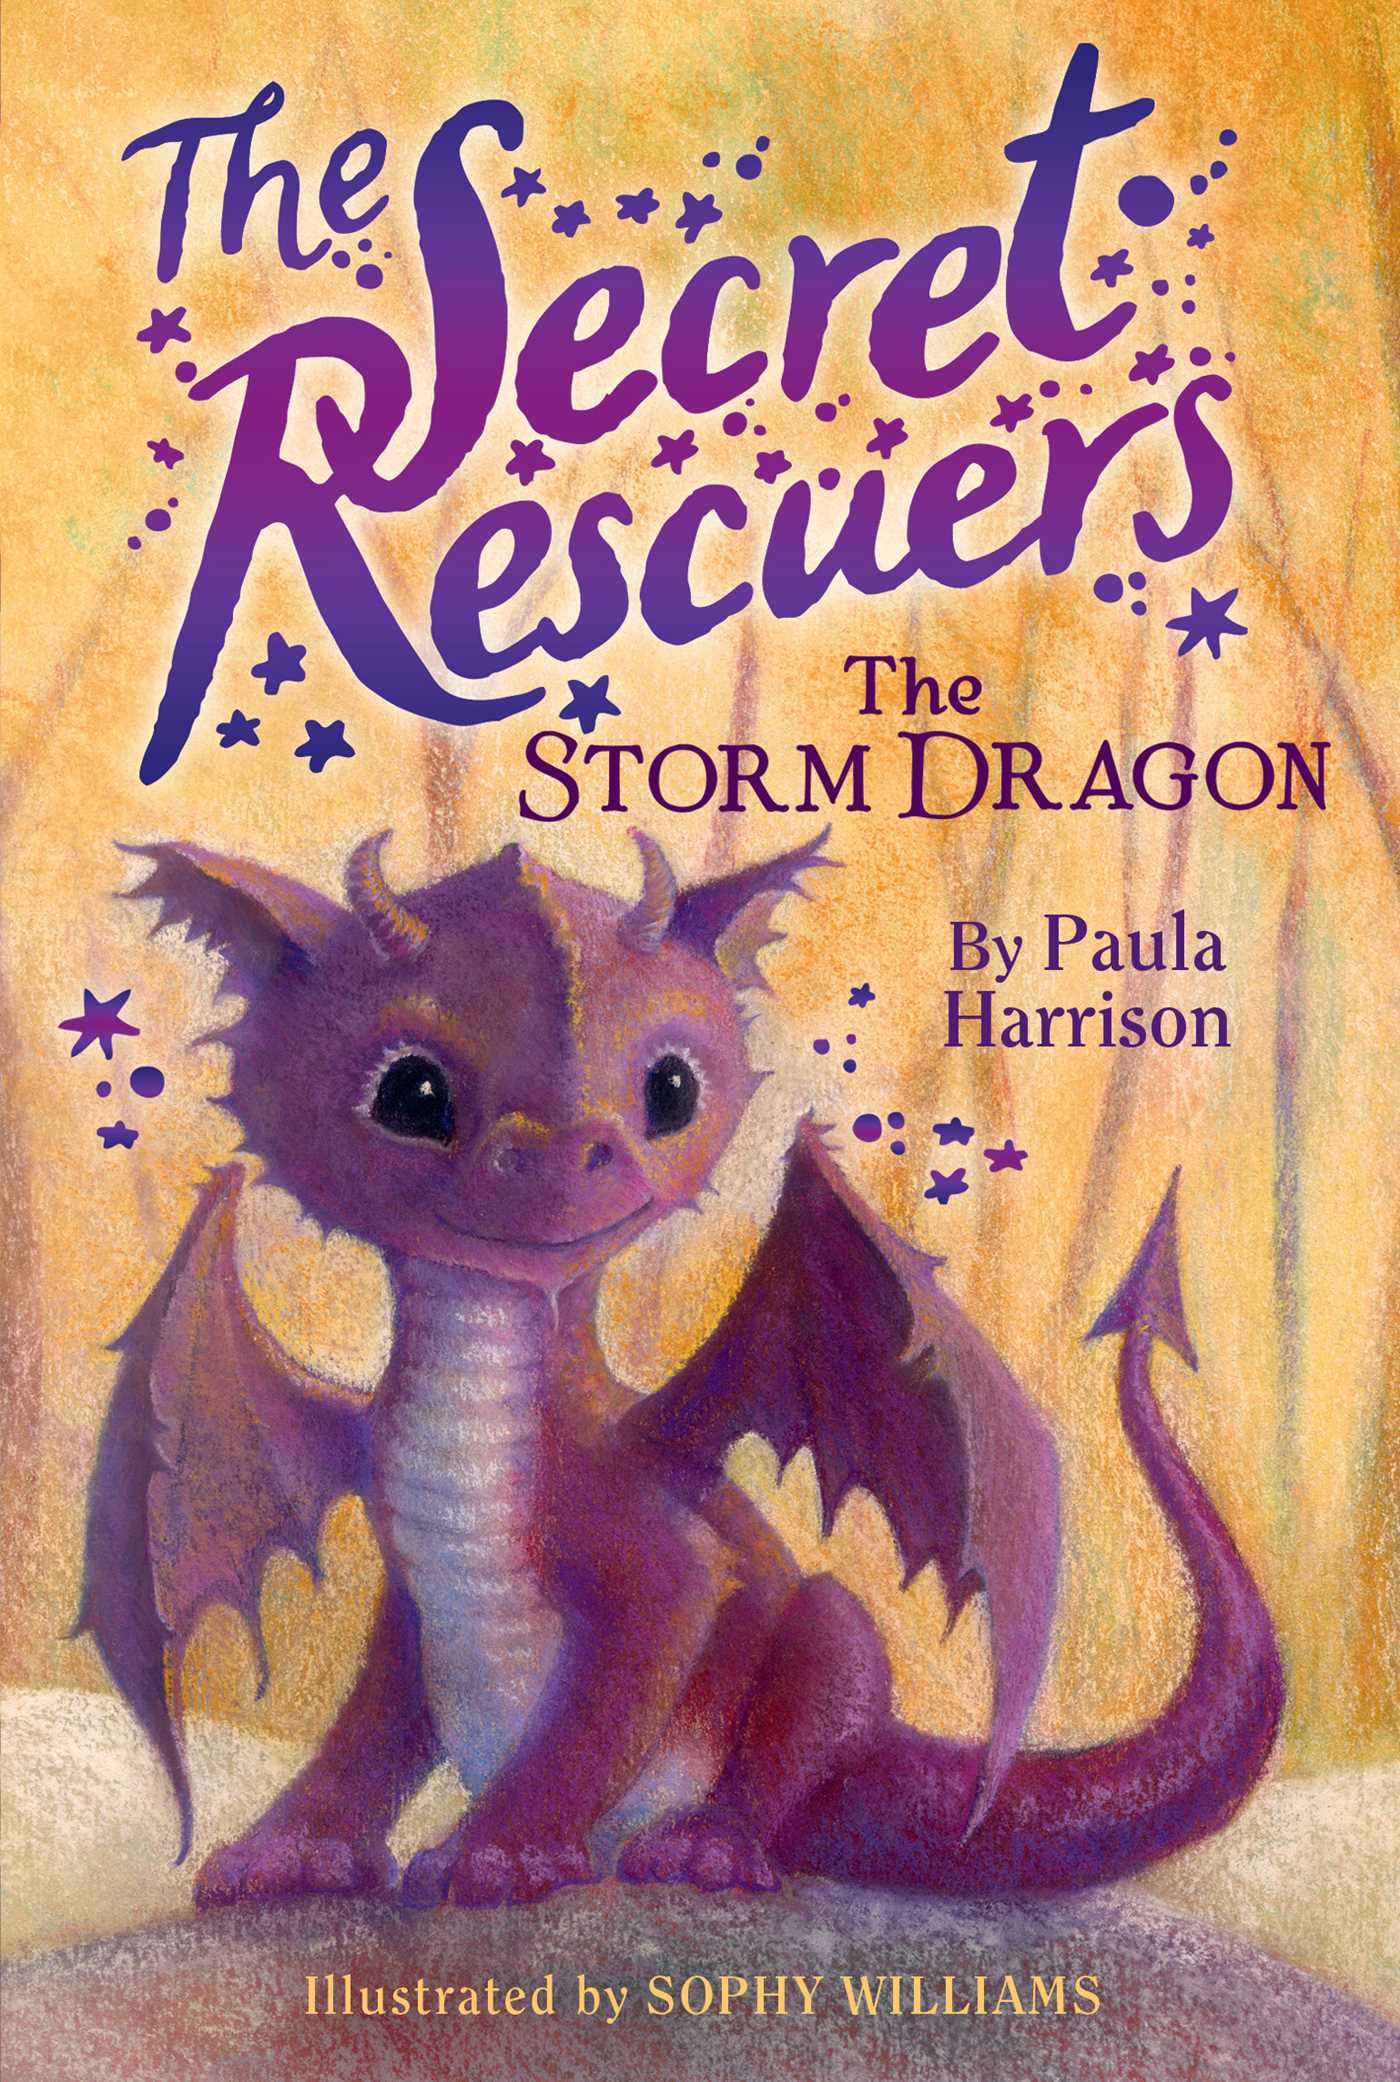 The Storm Dragon Book By Paula Harrison Sophy Williams